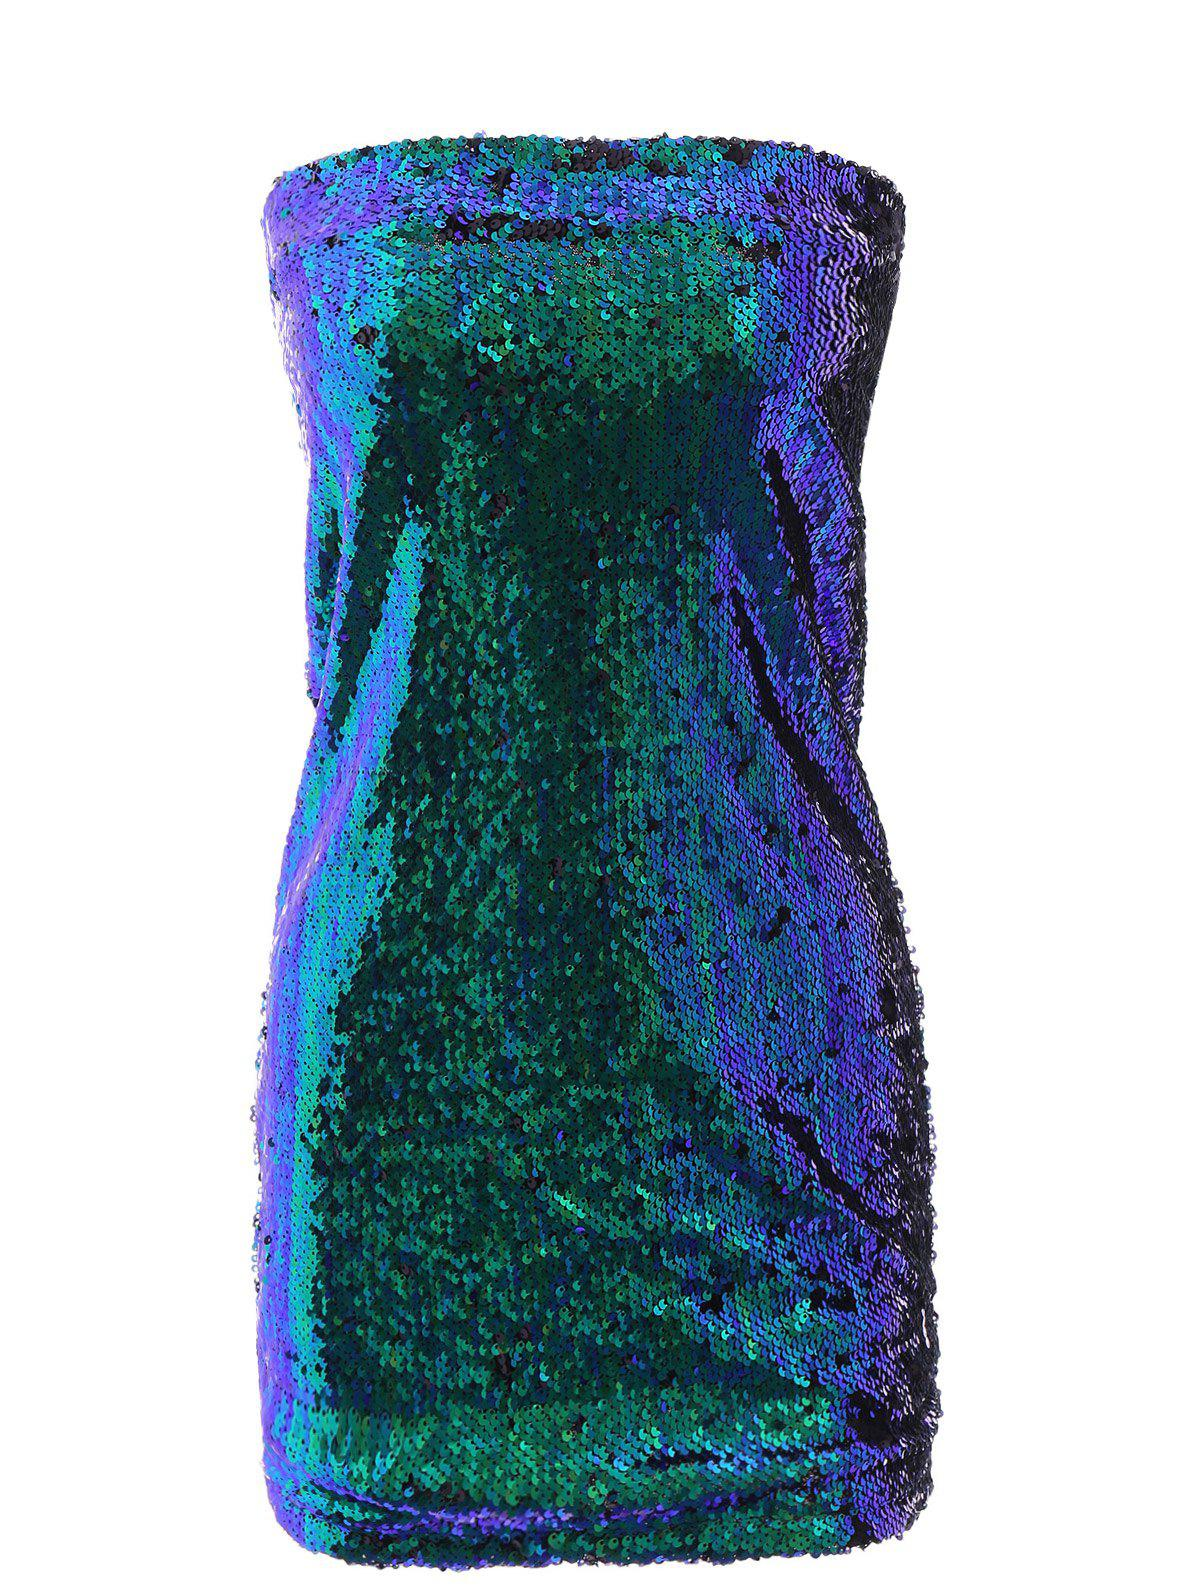 Women's Trendy High Waist Skinny Sequined Skirt - GREEN XL